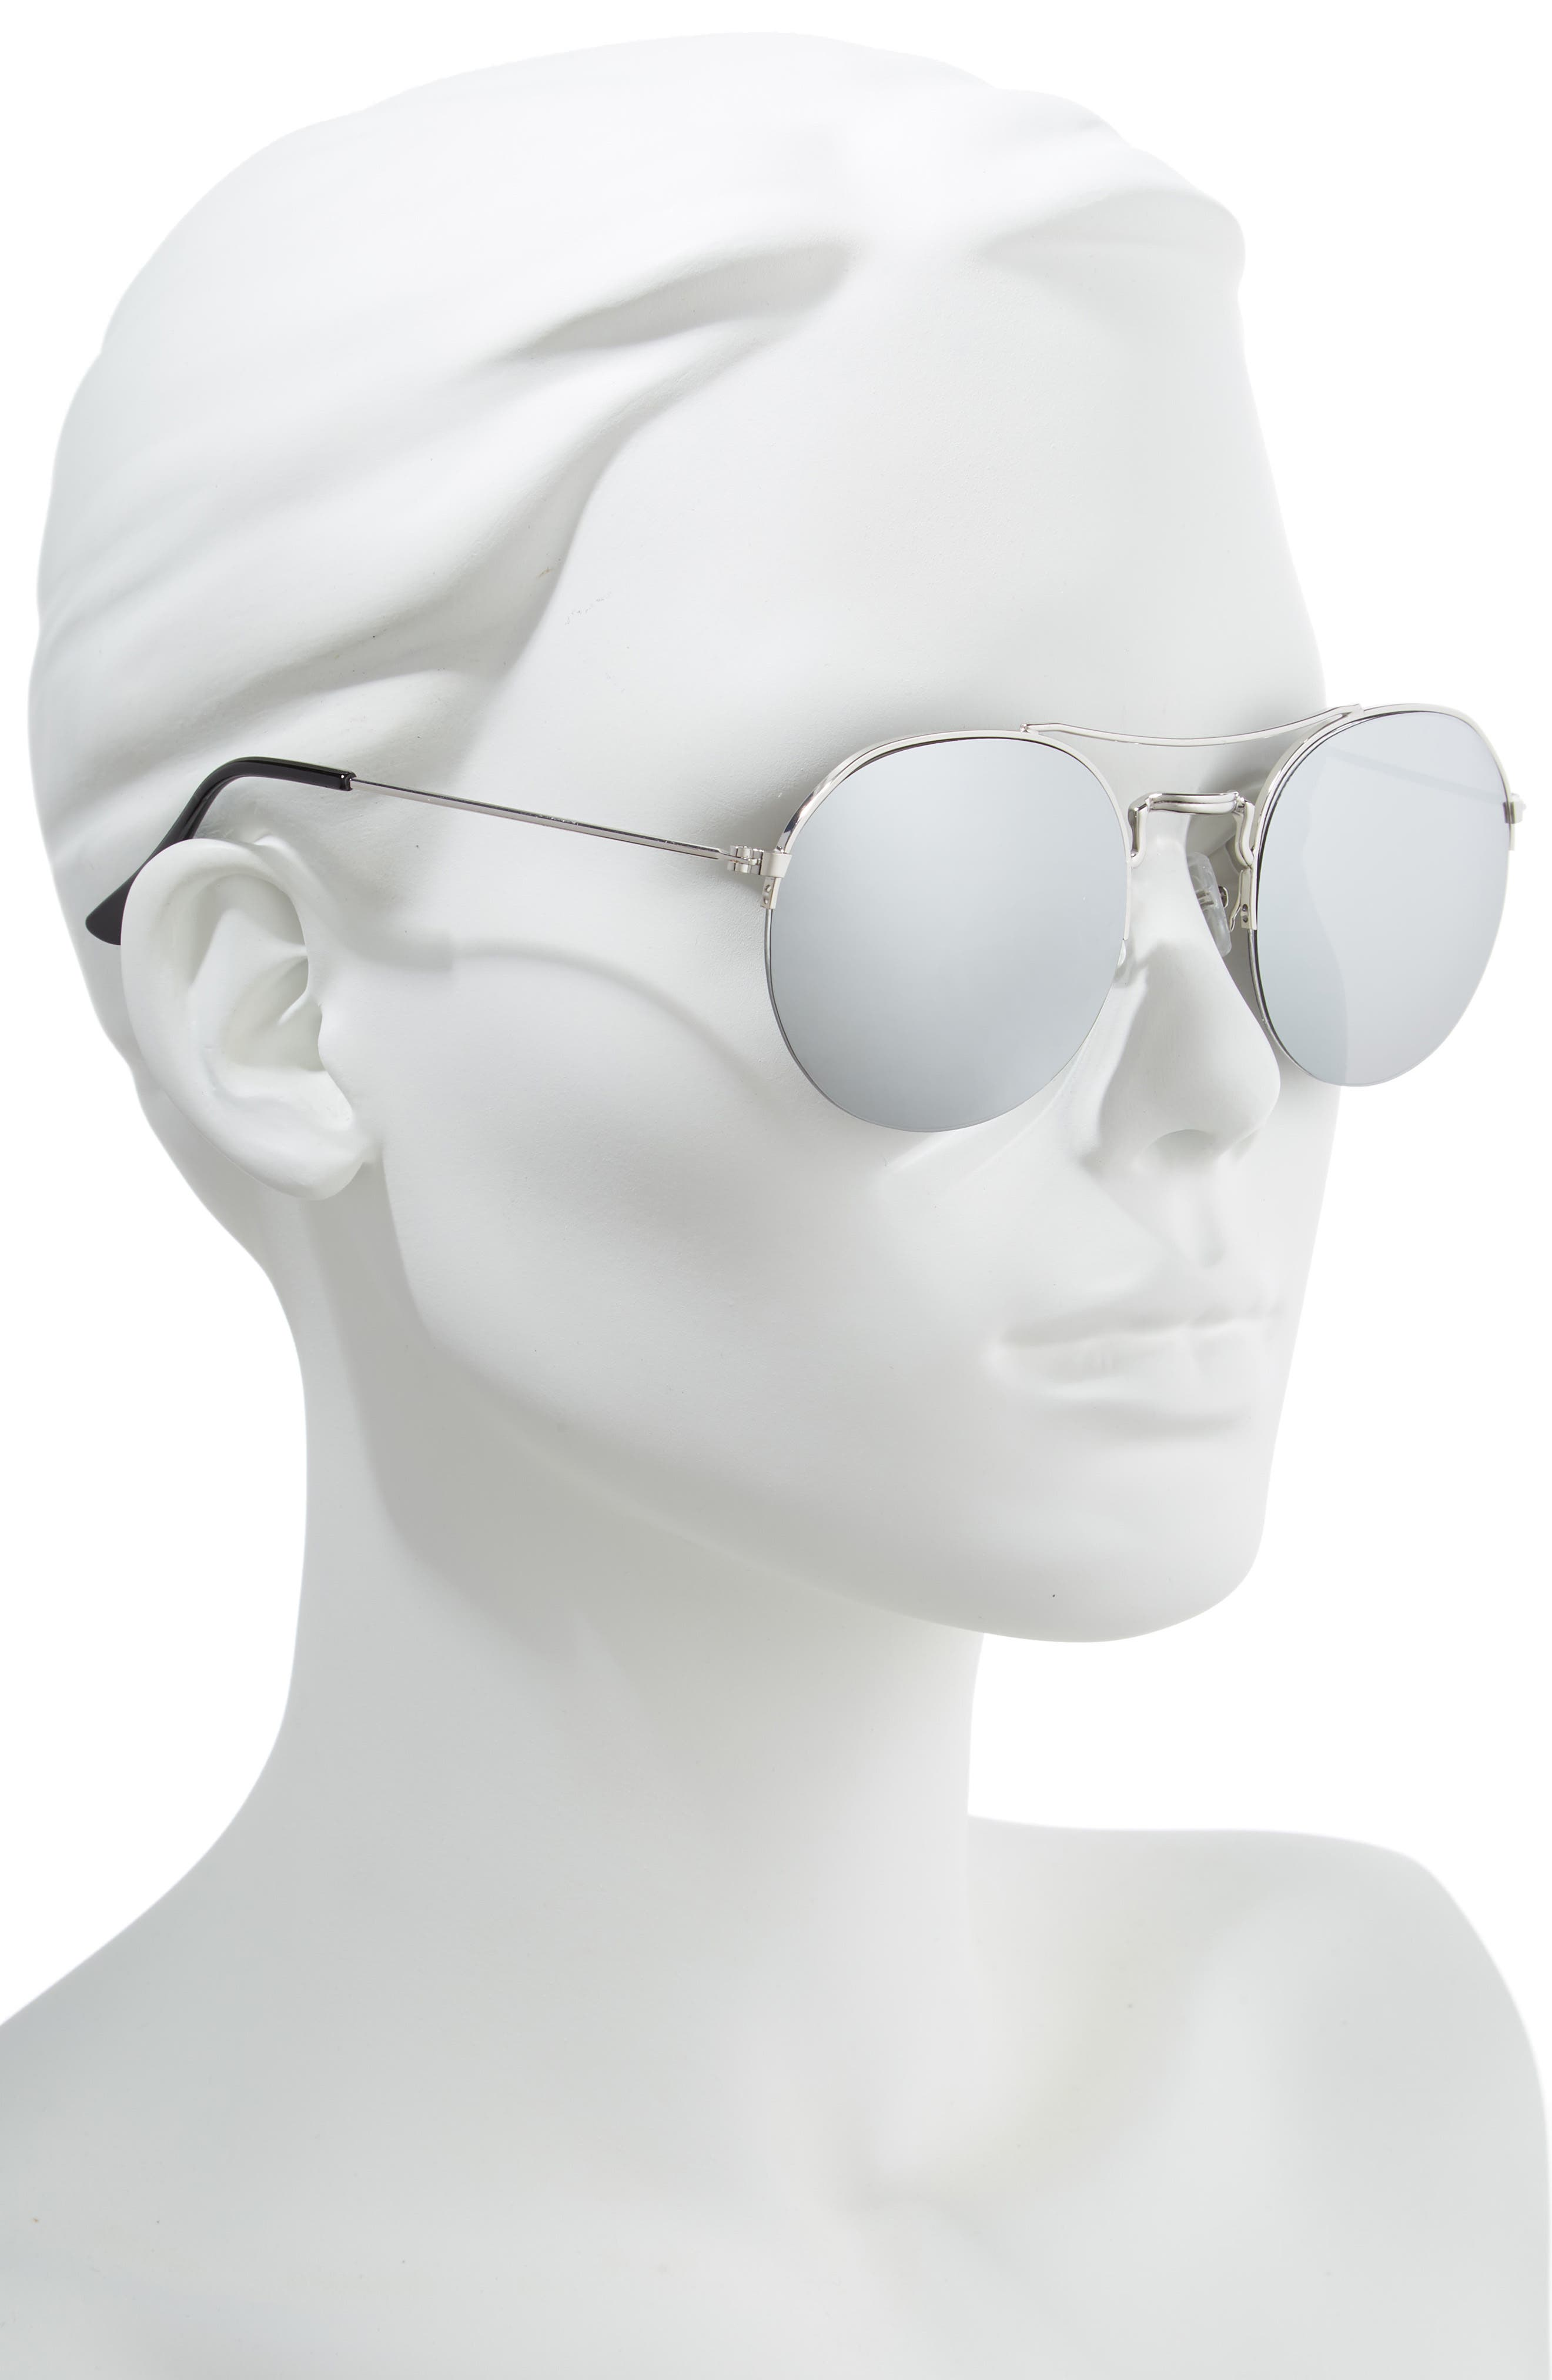 55mm Round Metal Aviator Sunglasses,                             Alternate thumbnail 2, color,                             020